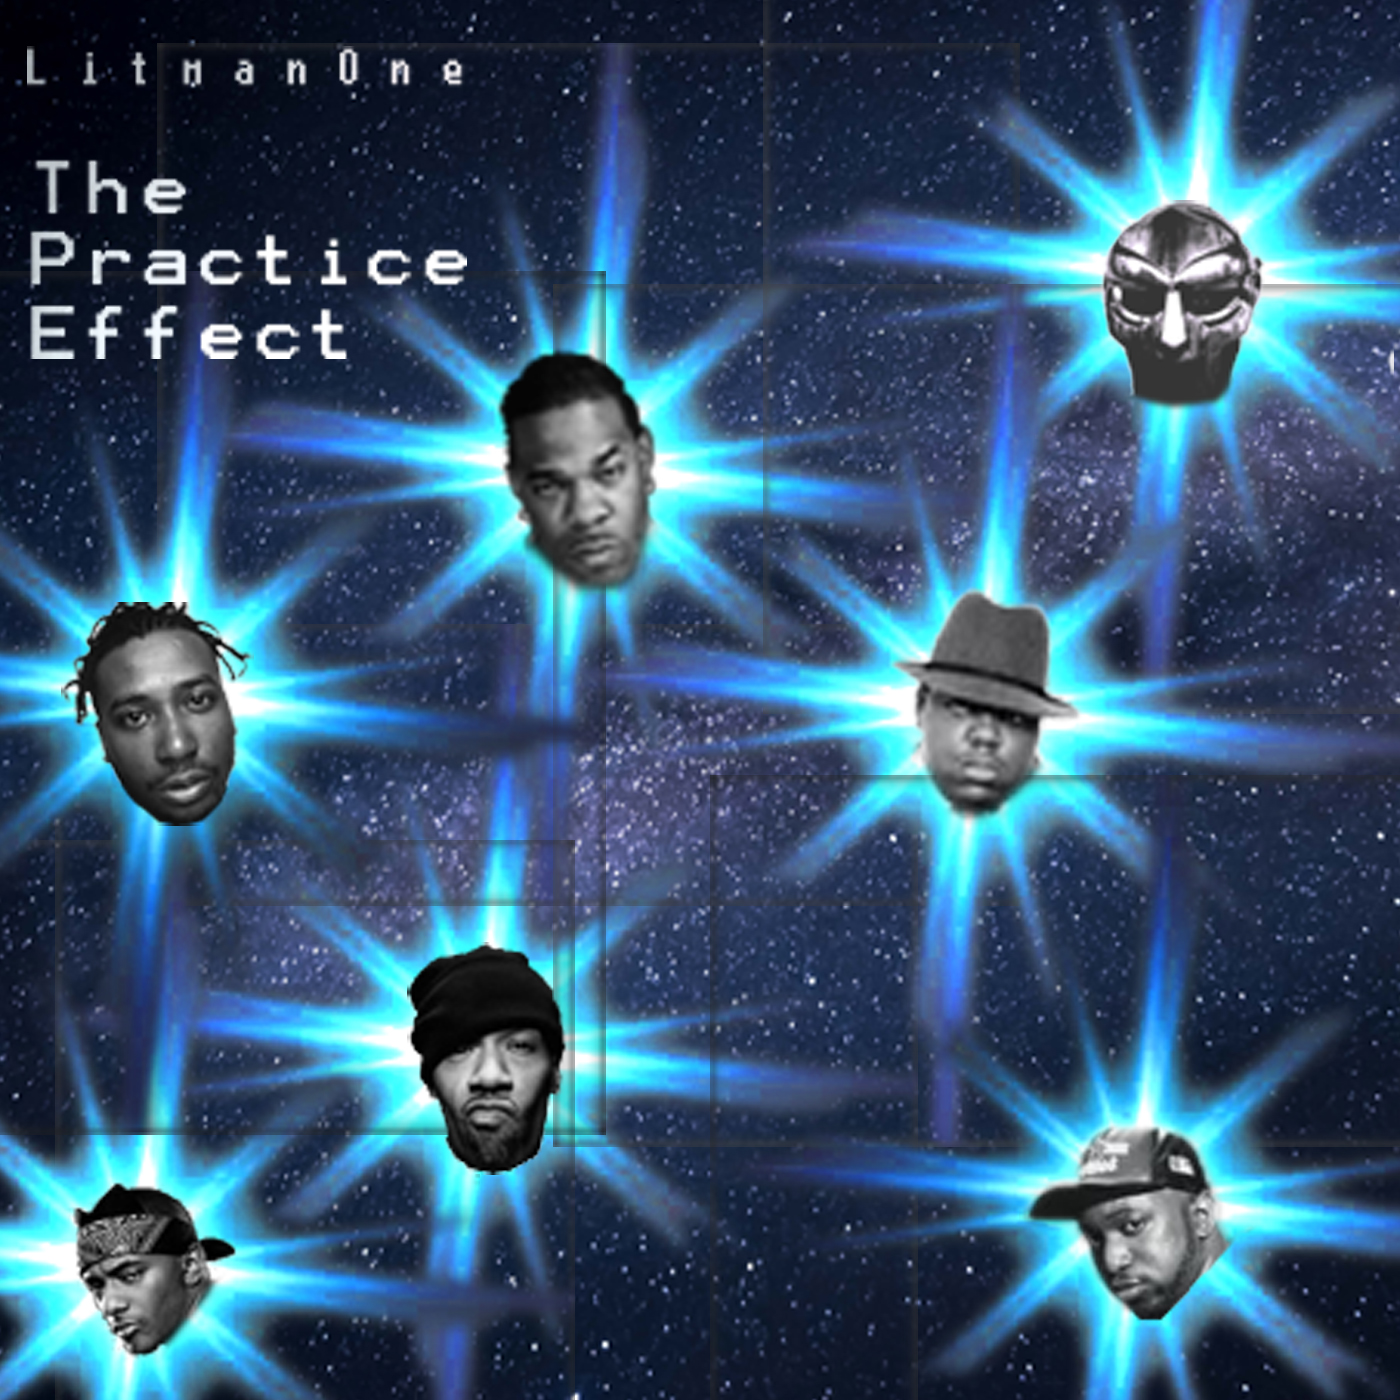 The Practice Effect by Litman | Oldschool Eastcoast MCs Remix Album